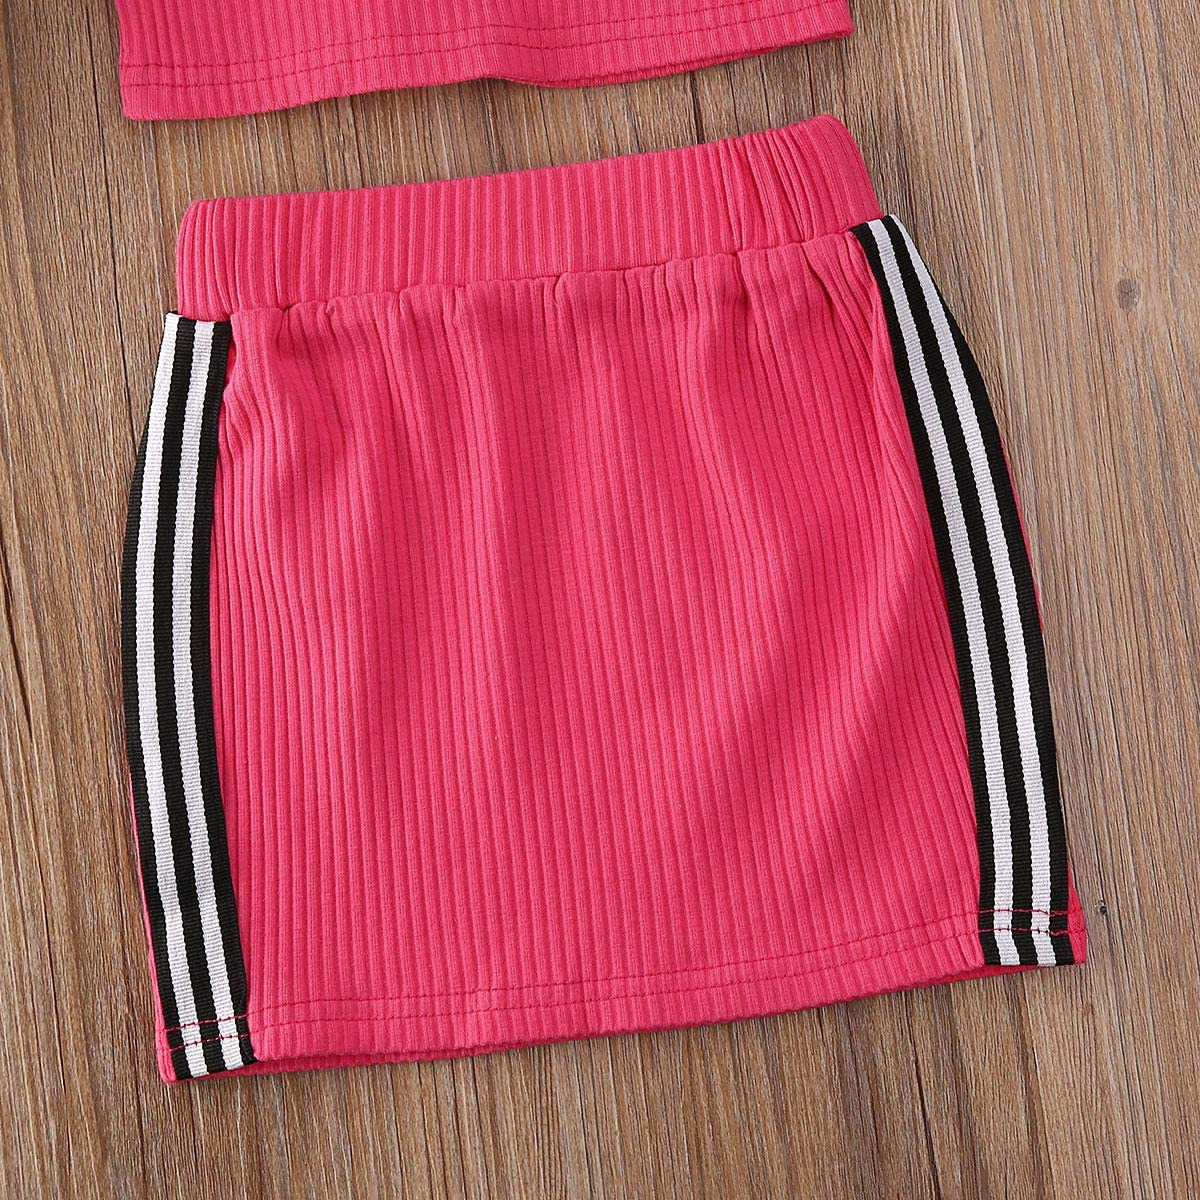 Fepege Toddler Baby Girls Sleeveless Halter Tank Crop Tops and A-line Skirt Outfits Set